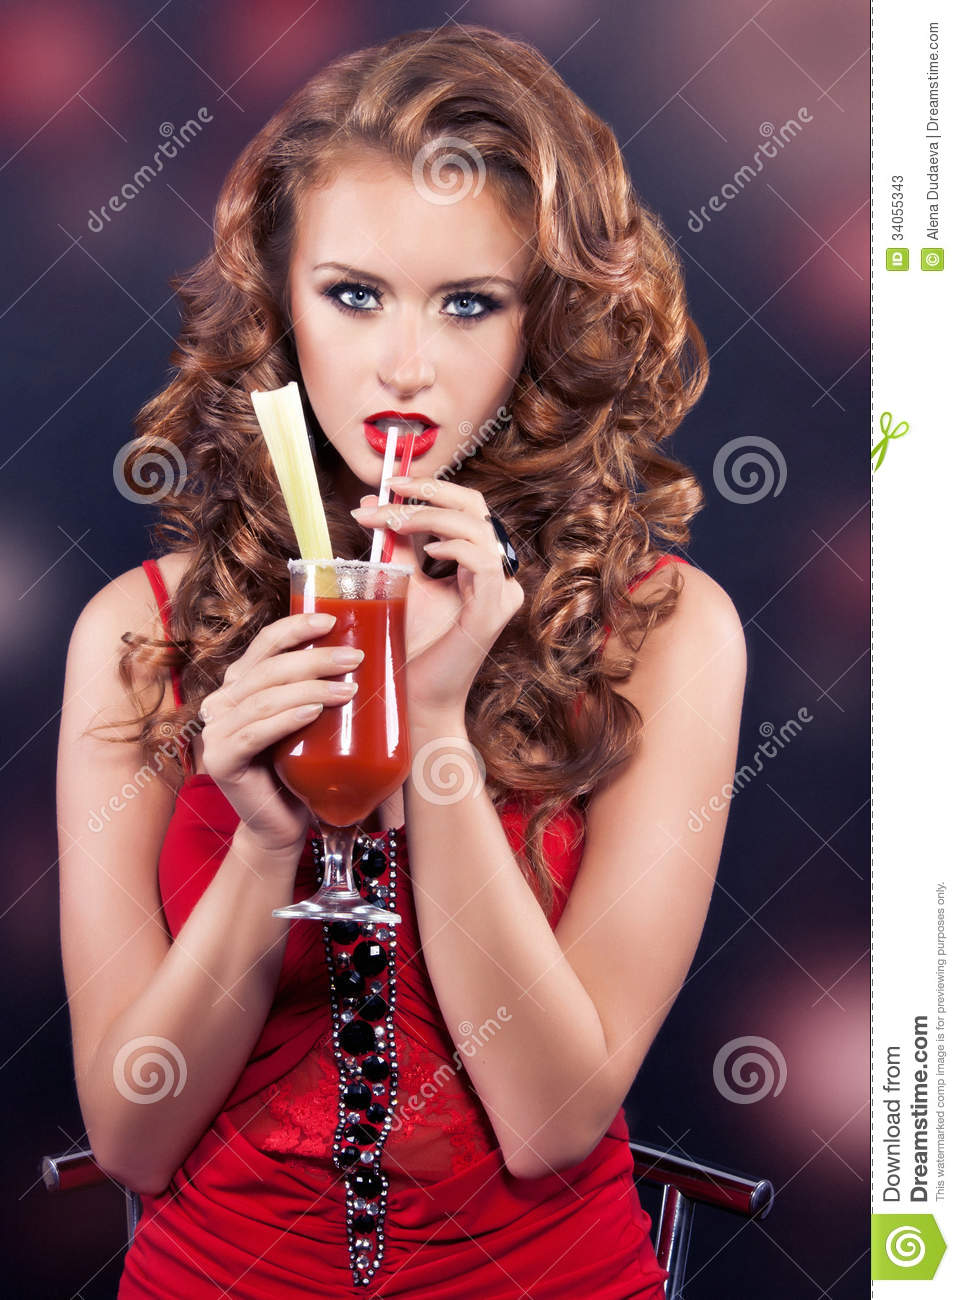 Cute Wallpapers For Adults Beautiful Red Haired Girl In A Red Cocktail Dress Stock